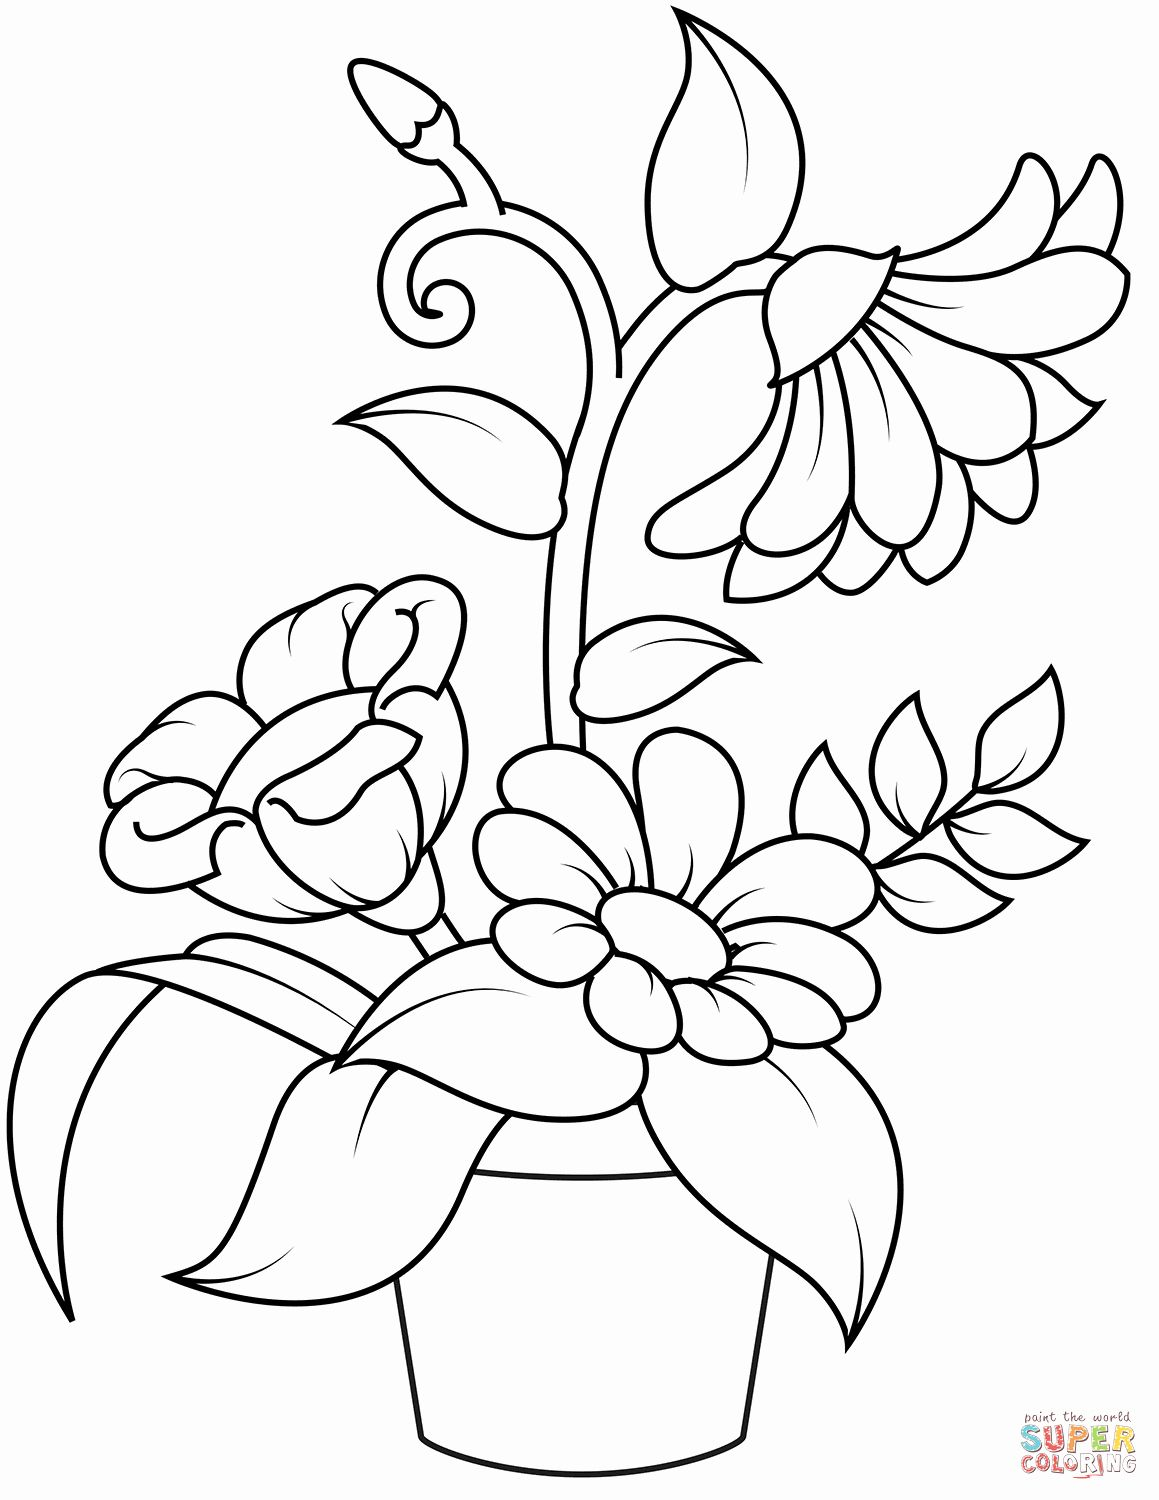 free flower coloring pages for adults floral coloring pages for adults best coloring pages for adults coloring pages for free flower